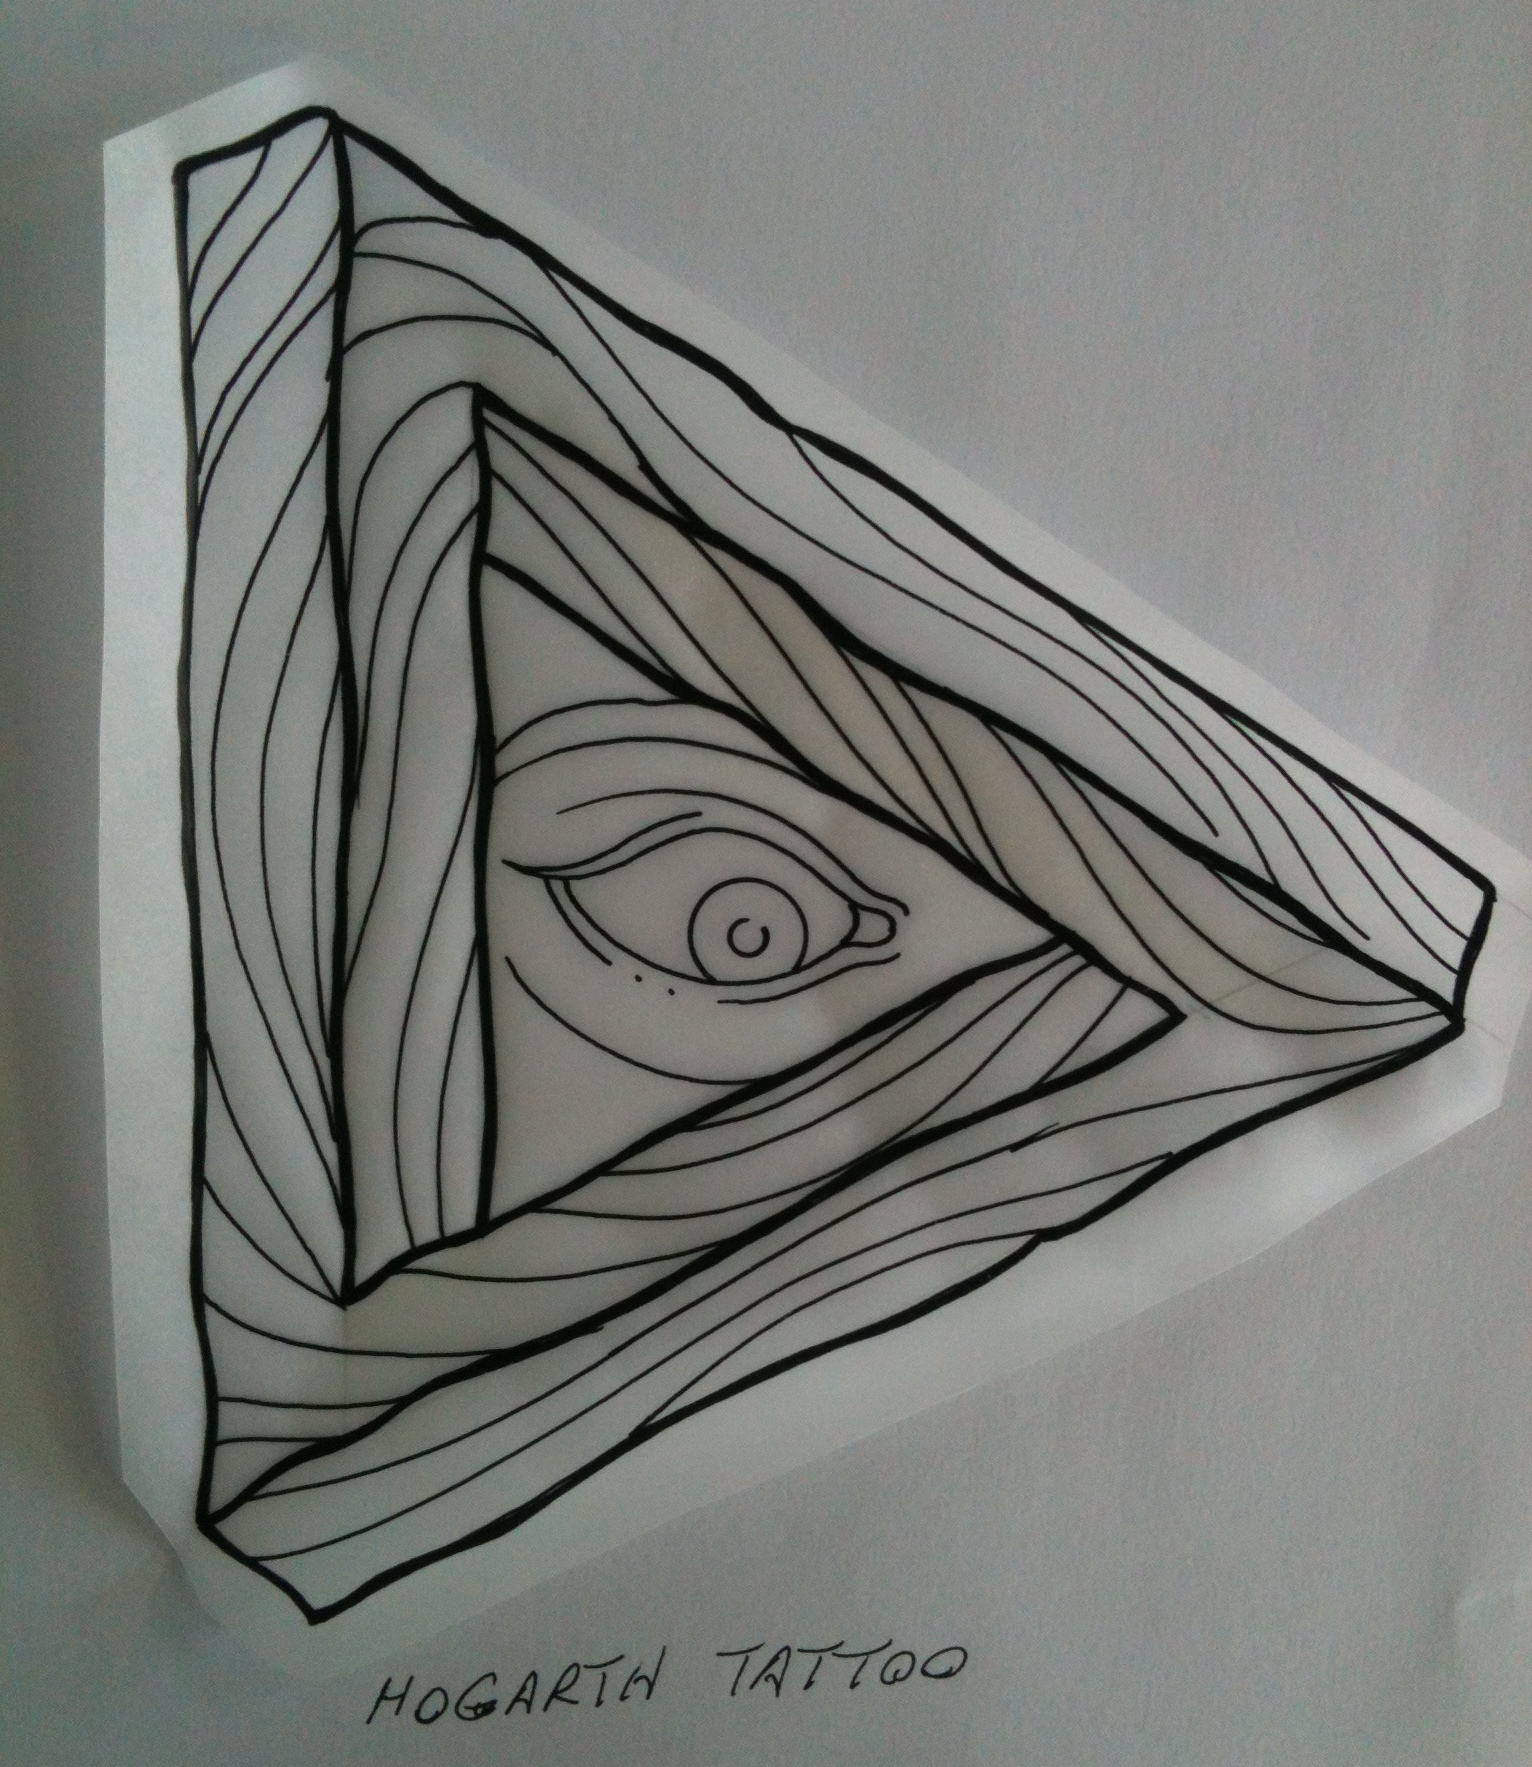 Irish Street Tattoo All Seeing Eye Impossible Triangle Wooden